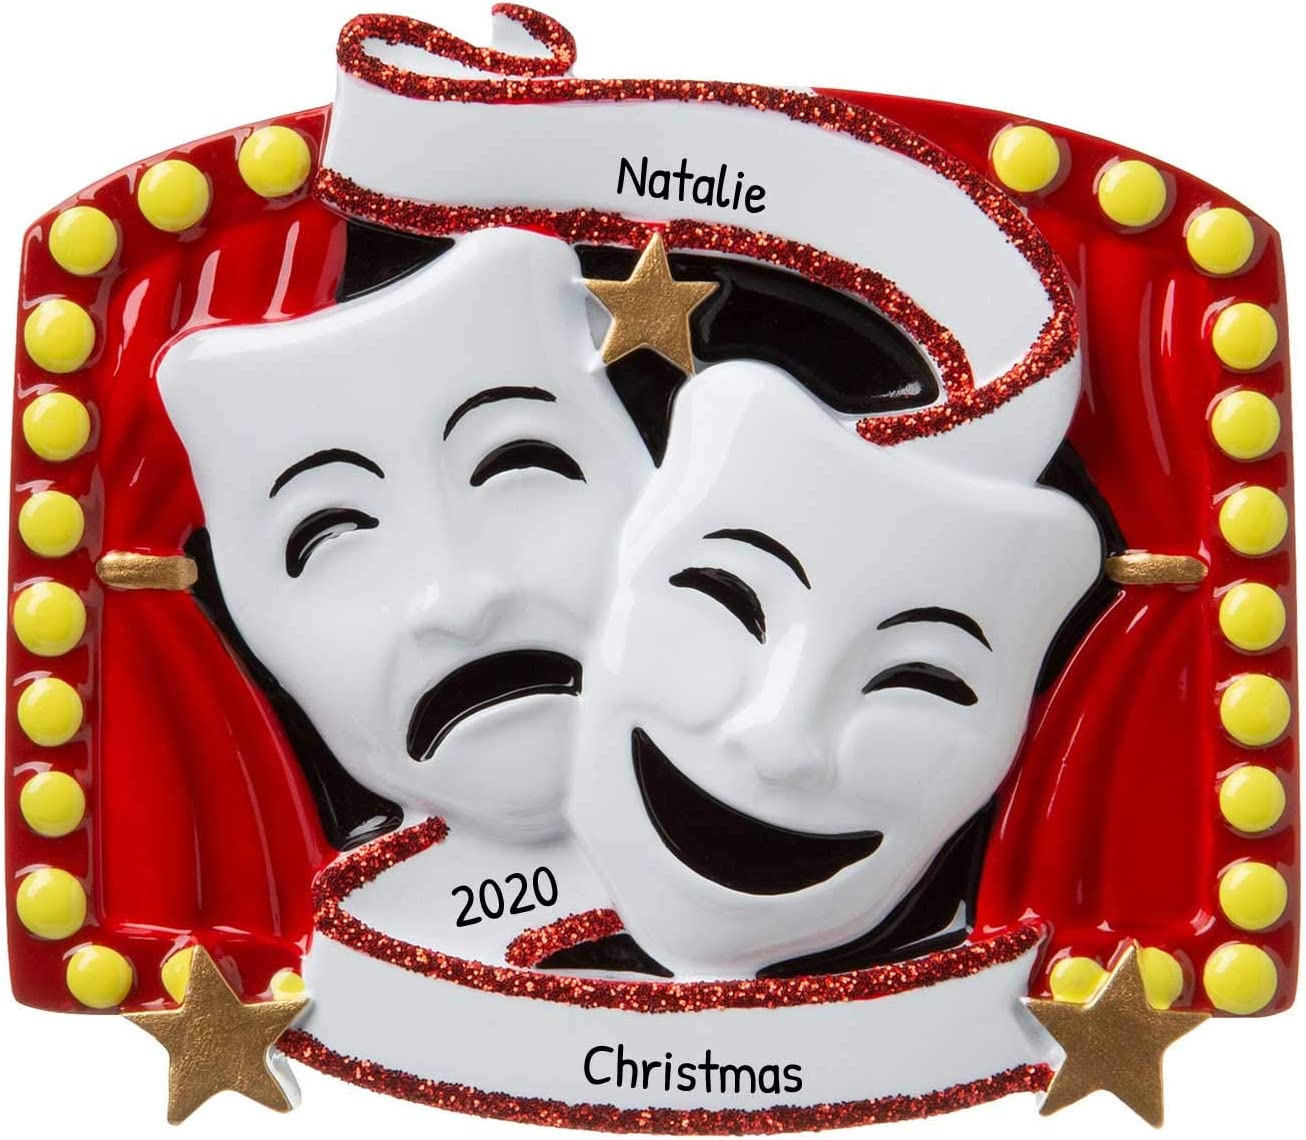 Christmas Comedy Show 2020 Amazon.com: Personalized New Theater Christmas Tree Ornament 2020